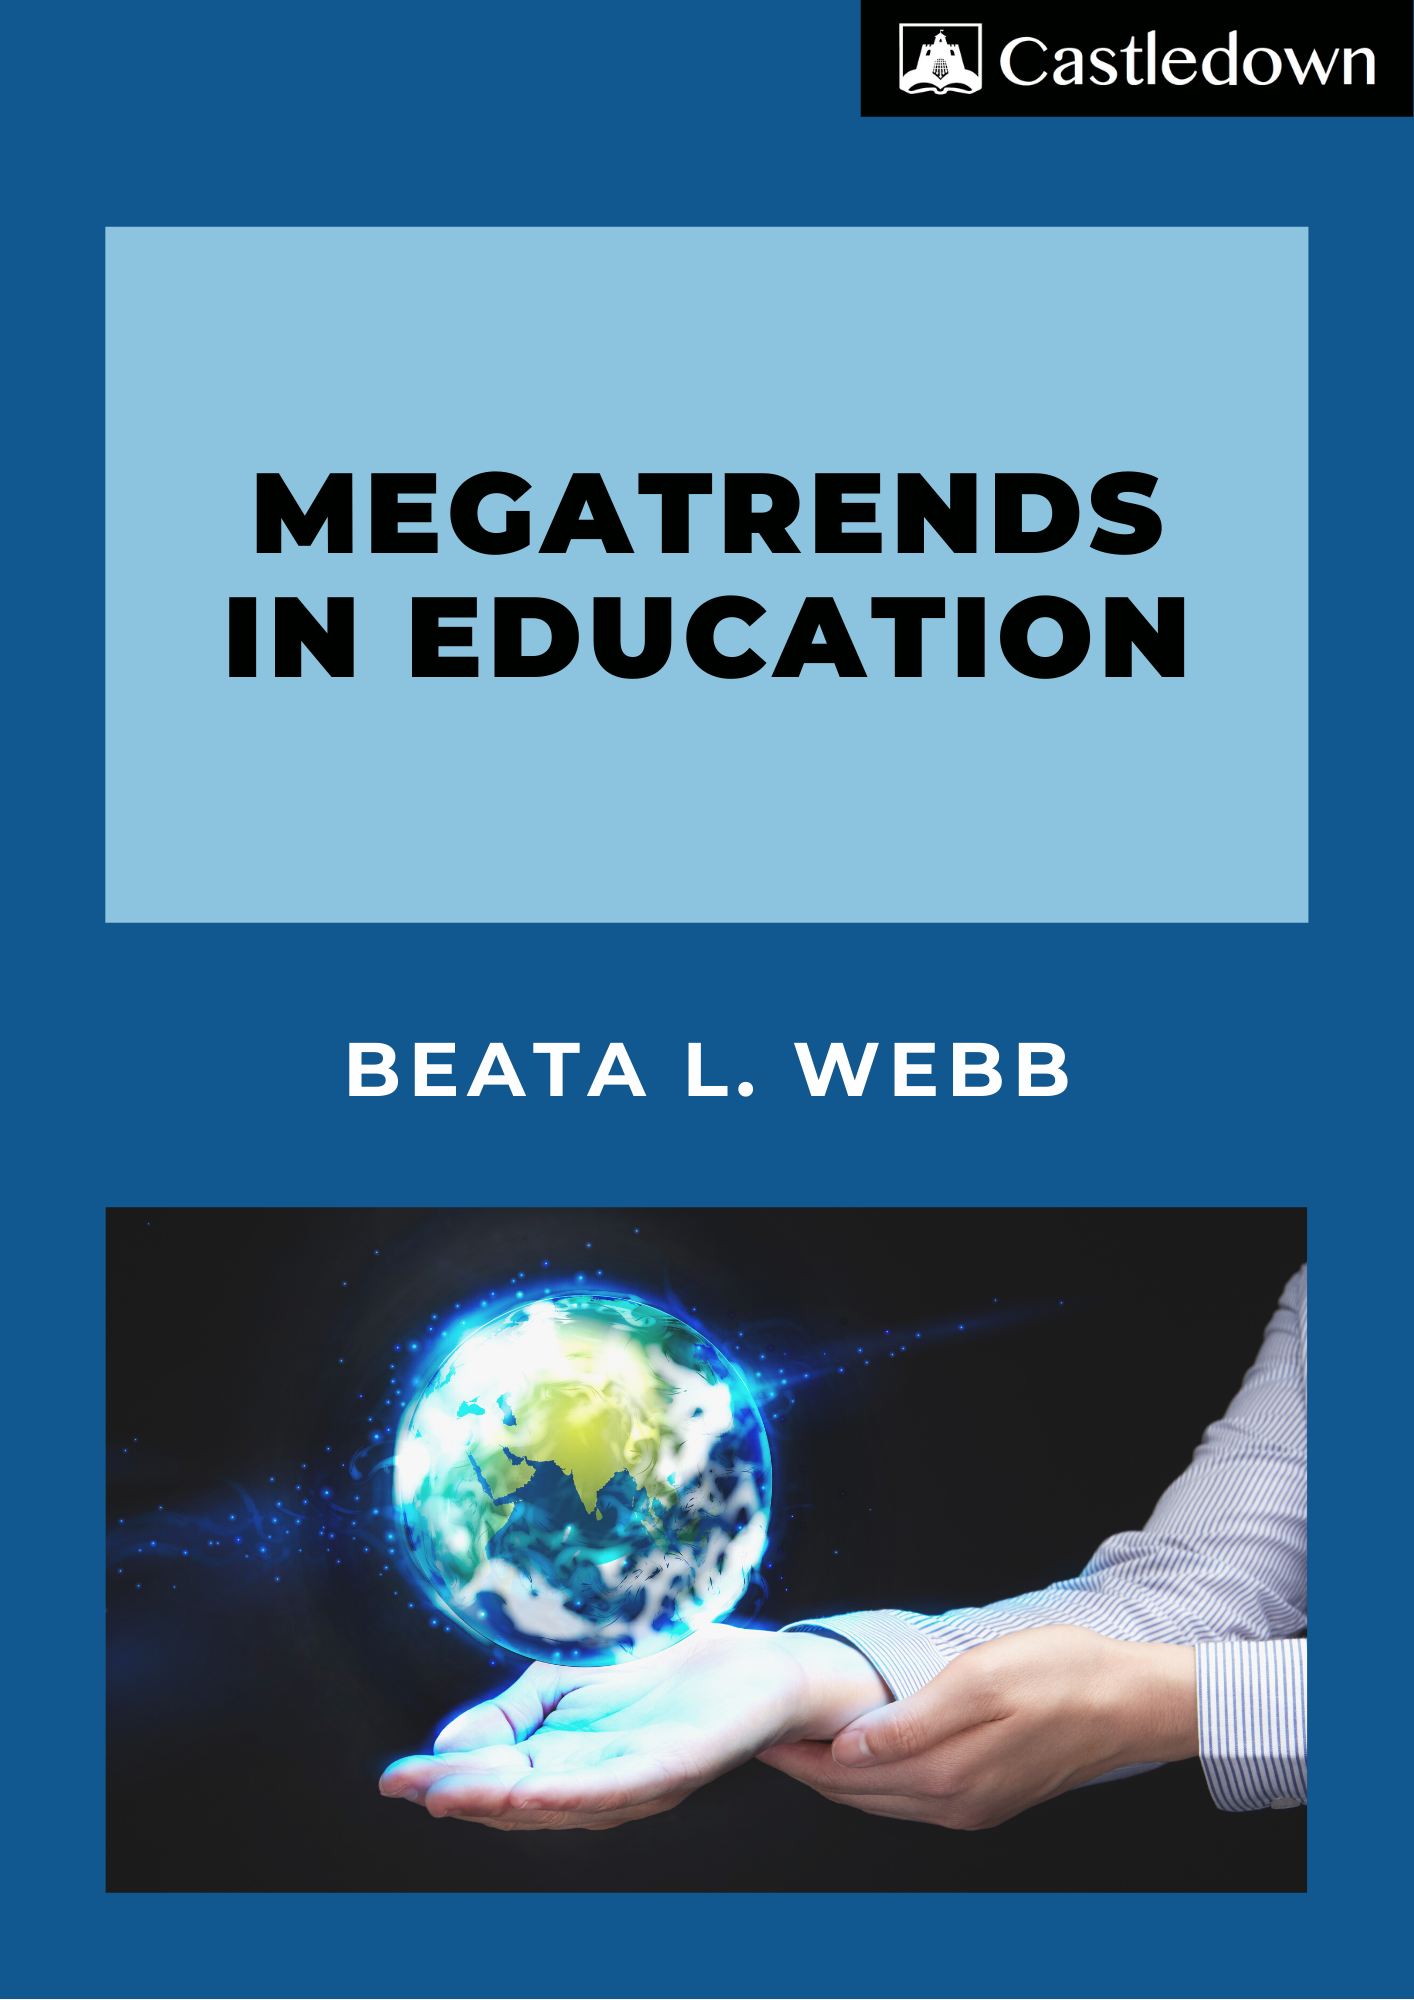 Megatrends in education